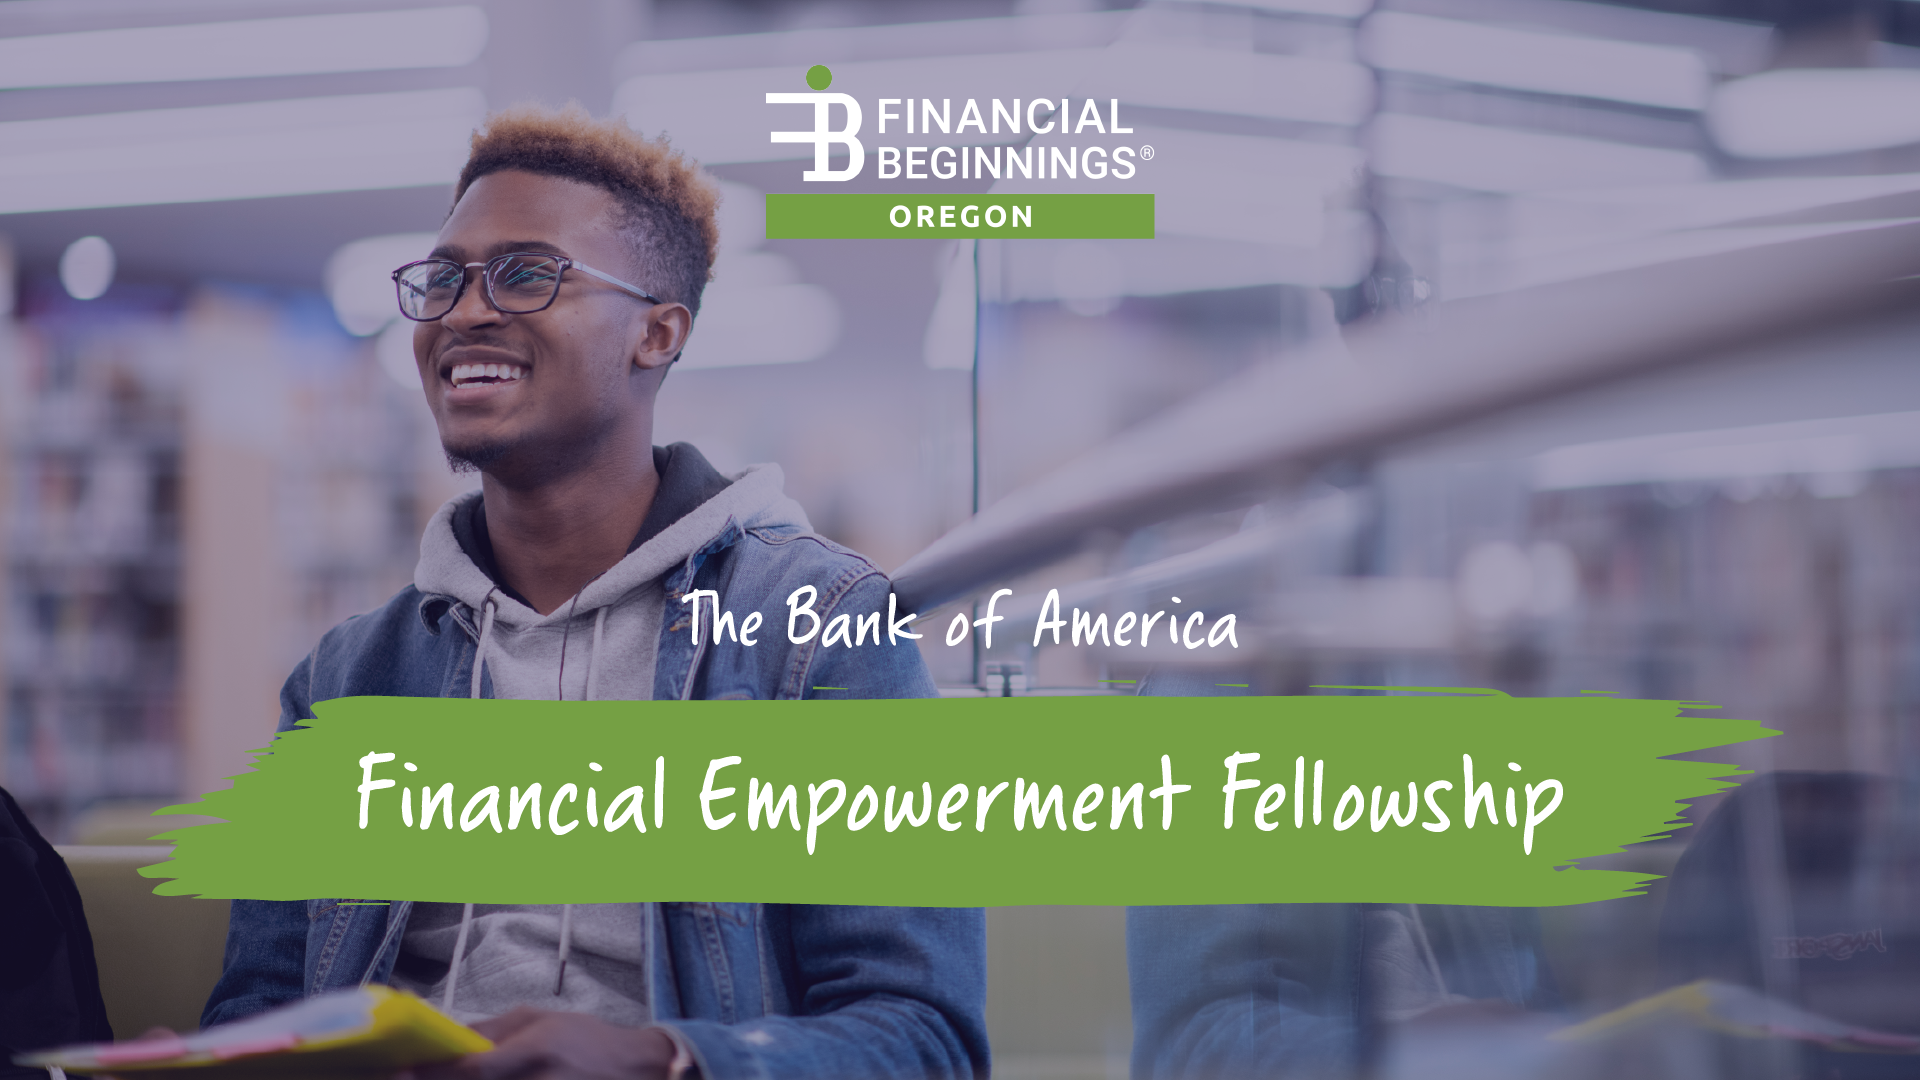 Financial Empowerment Fellowship